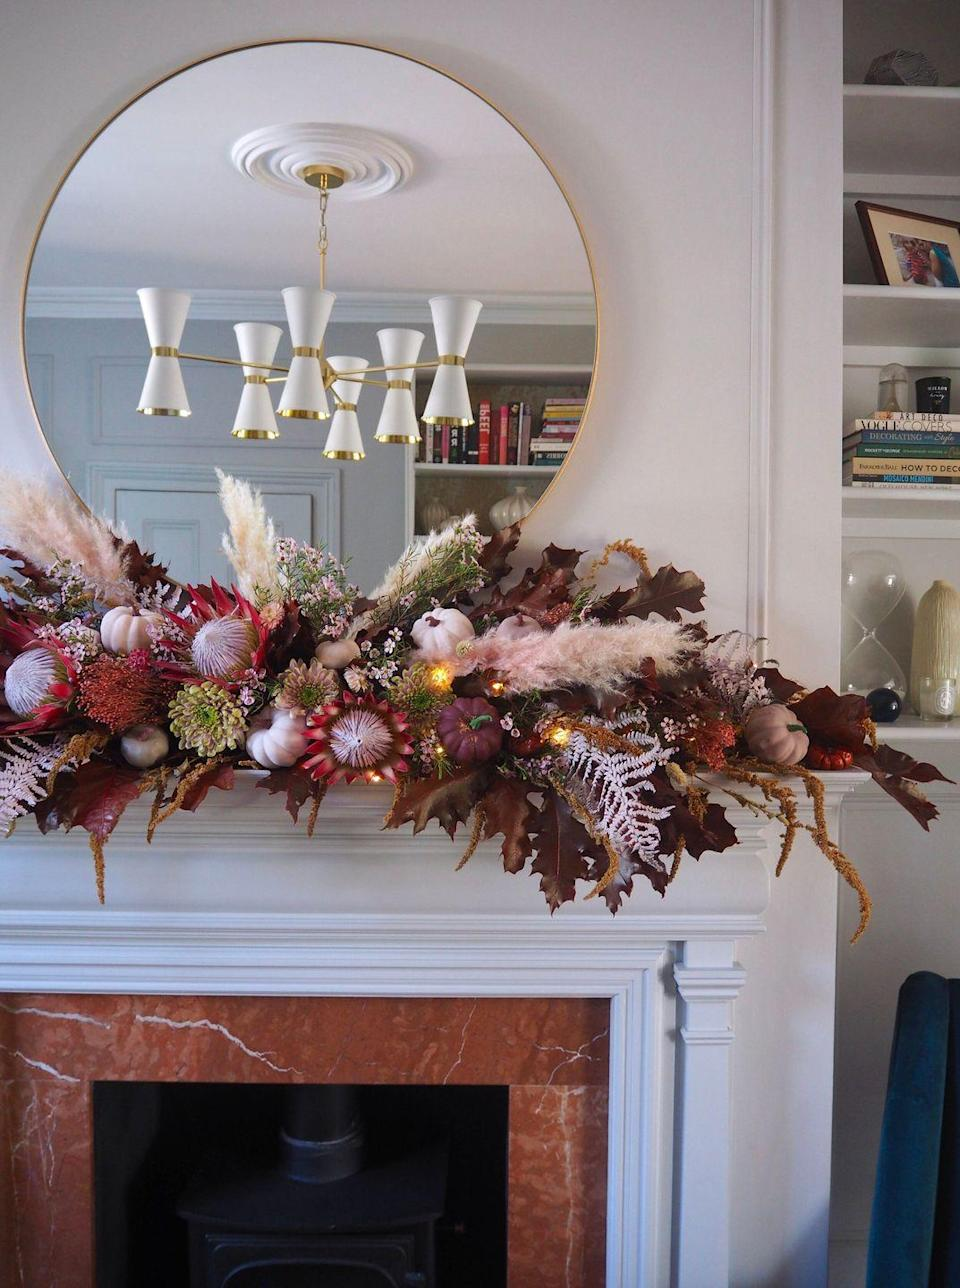 """<p>Layer dark florals, small pumpkins, and pampas grass to create the look. Don't forget the fairy lights!</p><p><strong>Get the tutorial at <a href=""""https://www.melanielissackinteriors.com/blog/2020/9/28/diy-floral-garland-autumn-fall-home-decor"""" rel=""""nofollow noopener"""" target=""""_blank"""" data-ylk=""""slk:Melanie Lissack Interiors"""" class=""""link rapid-noclick-resp"""">Melanie Lissack Interiors</a>.</strong></p><p><a class=""""link rapid-noclick-resp"""" href=""""https://go.redirectingat.com?id=74968X1596630&url=https%3A%2F%2Fwww.walmart.com%2Fip%2F10PCS-20-LED-Copper-String-Fairy-Lights-Wire-Wedding-Xmas-Decor-Battery-Operated%2F698281176&sref=https%3A%2F%2Fwww.thepioneerwoman.com%2Fhome-lifestyle%2Fcrafts-diy%2Fg36891743%2Ffall-mantel-decorations%2F"""" rel=""""nofollow noopener"""" target=""""_blank"""" data-ylk=""""slk:SHOP LED STRING LIGHTS"""">SHOP LED STRING LIGHTS</a></p>"""